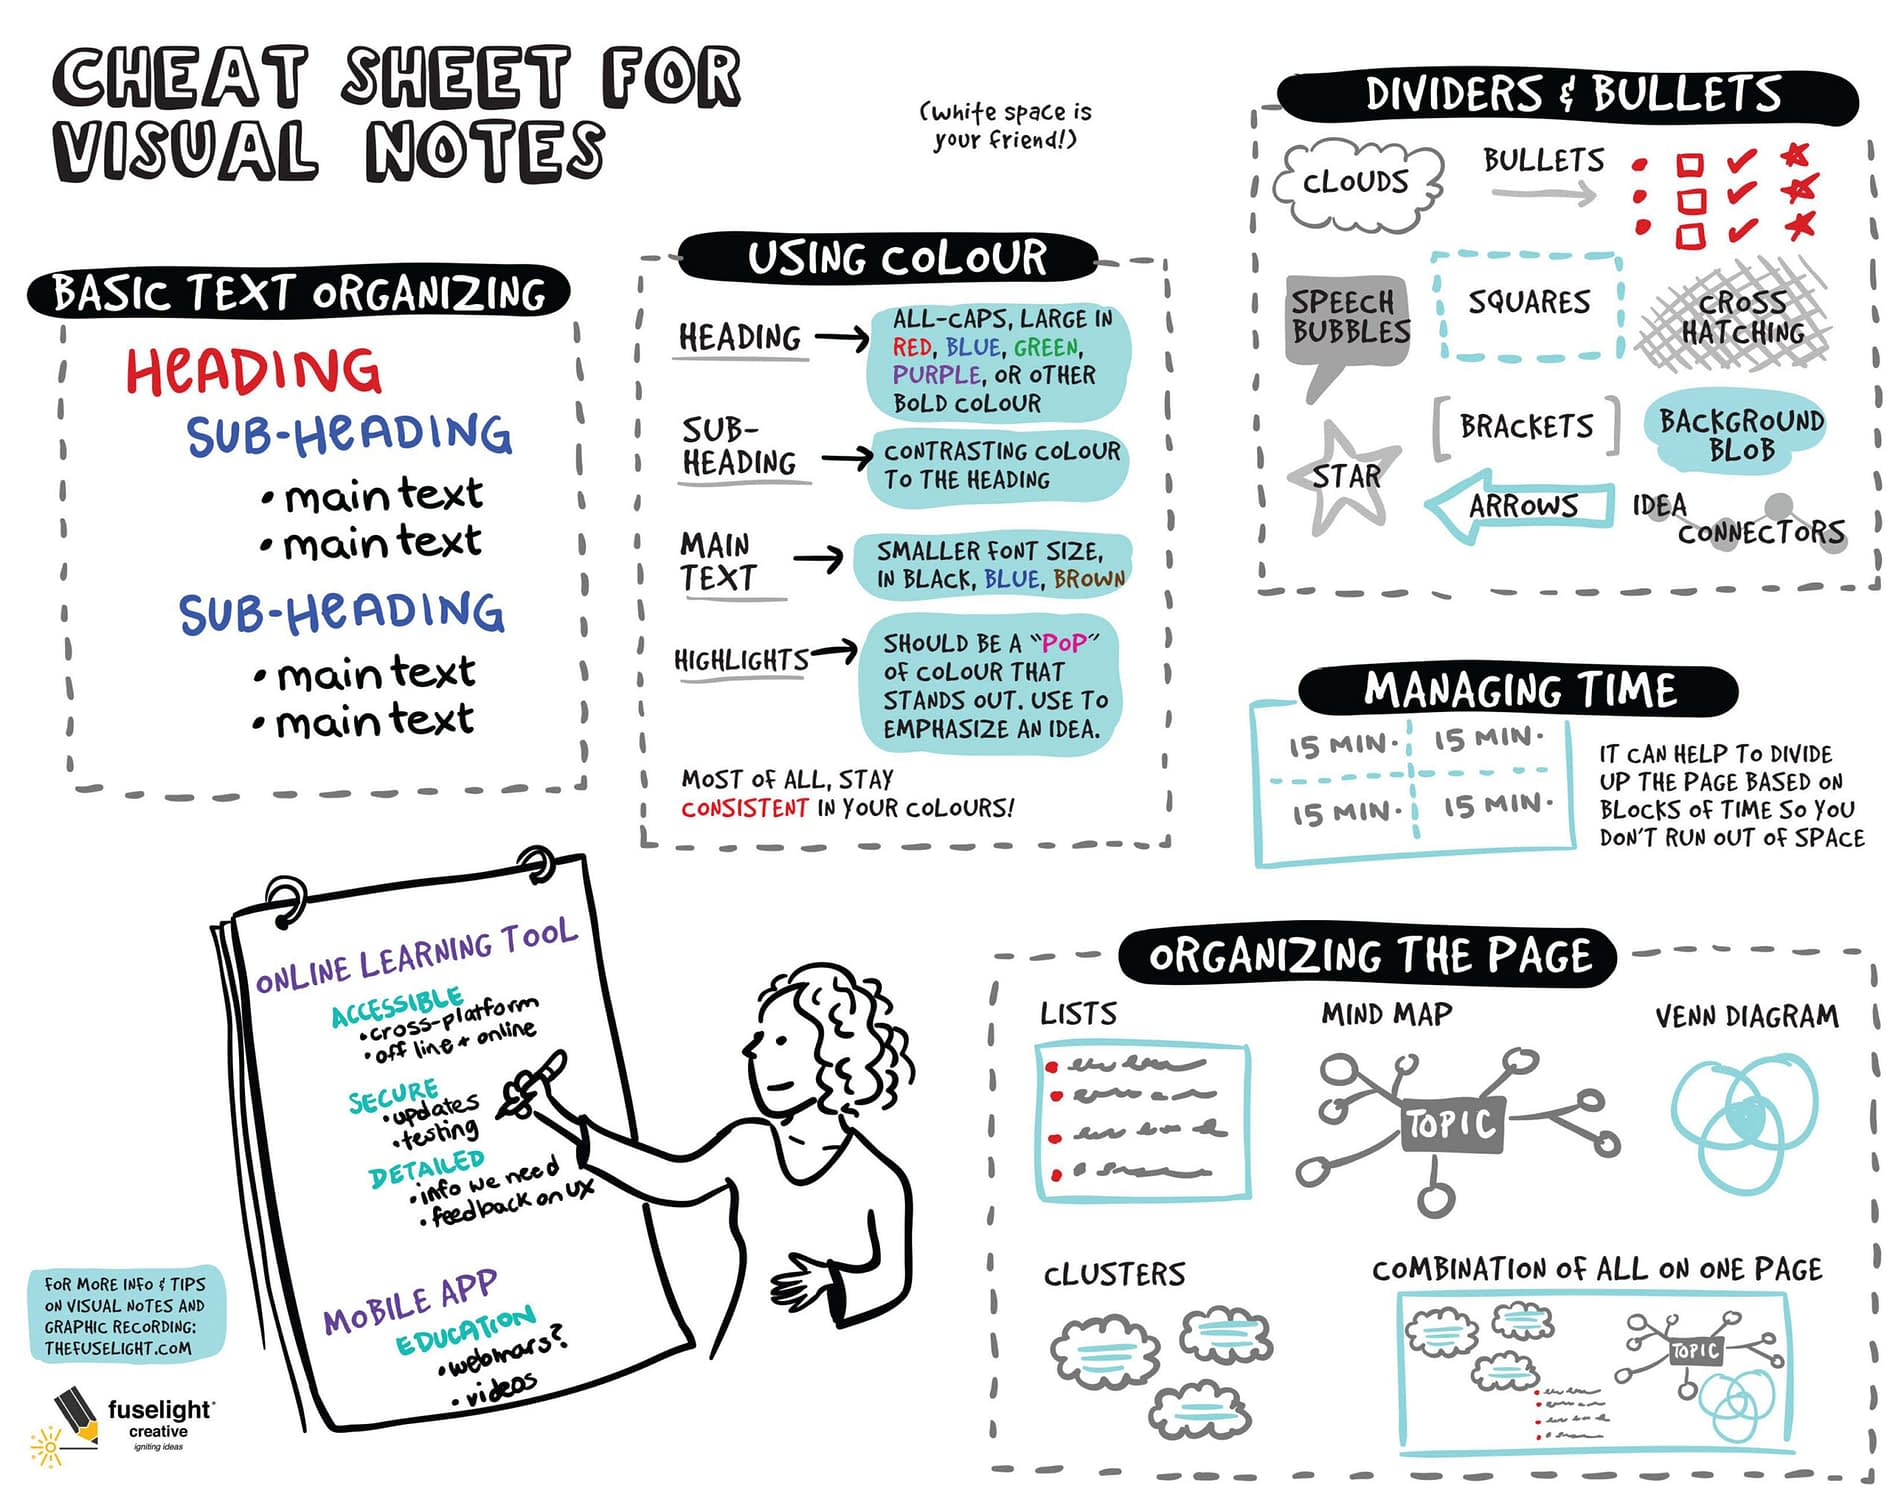 Visual notetaking for teachers, sketchnotes, tips for live drawing, visual scribing tips, cheat sheet for visual notes